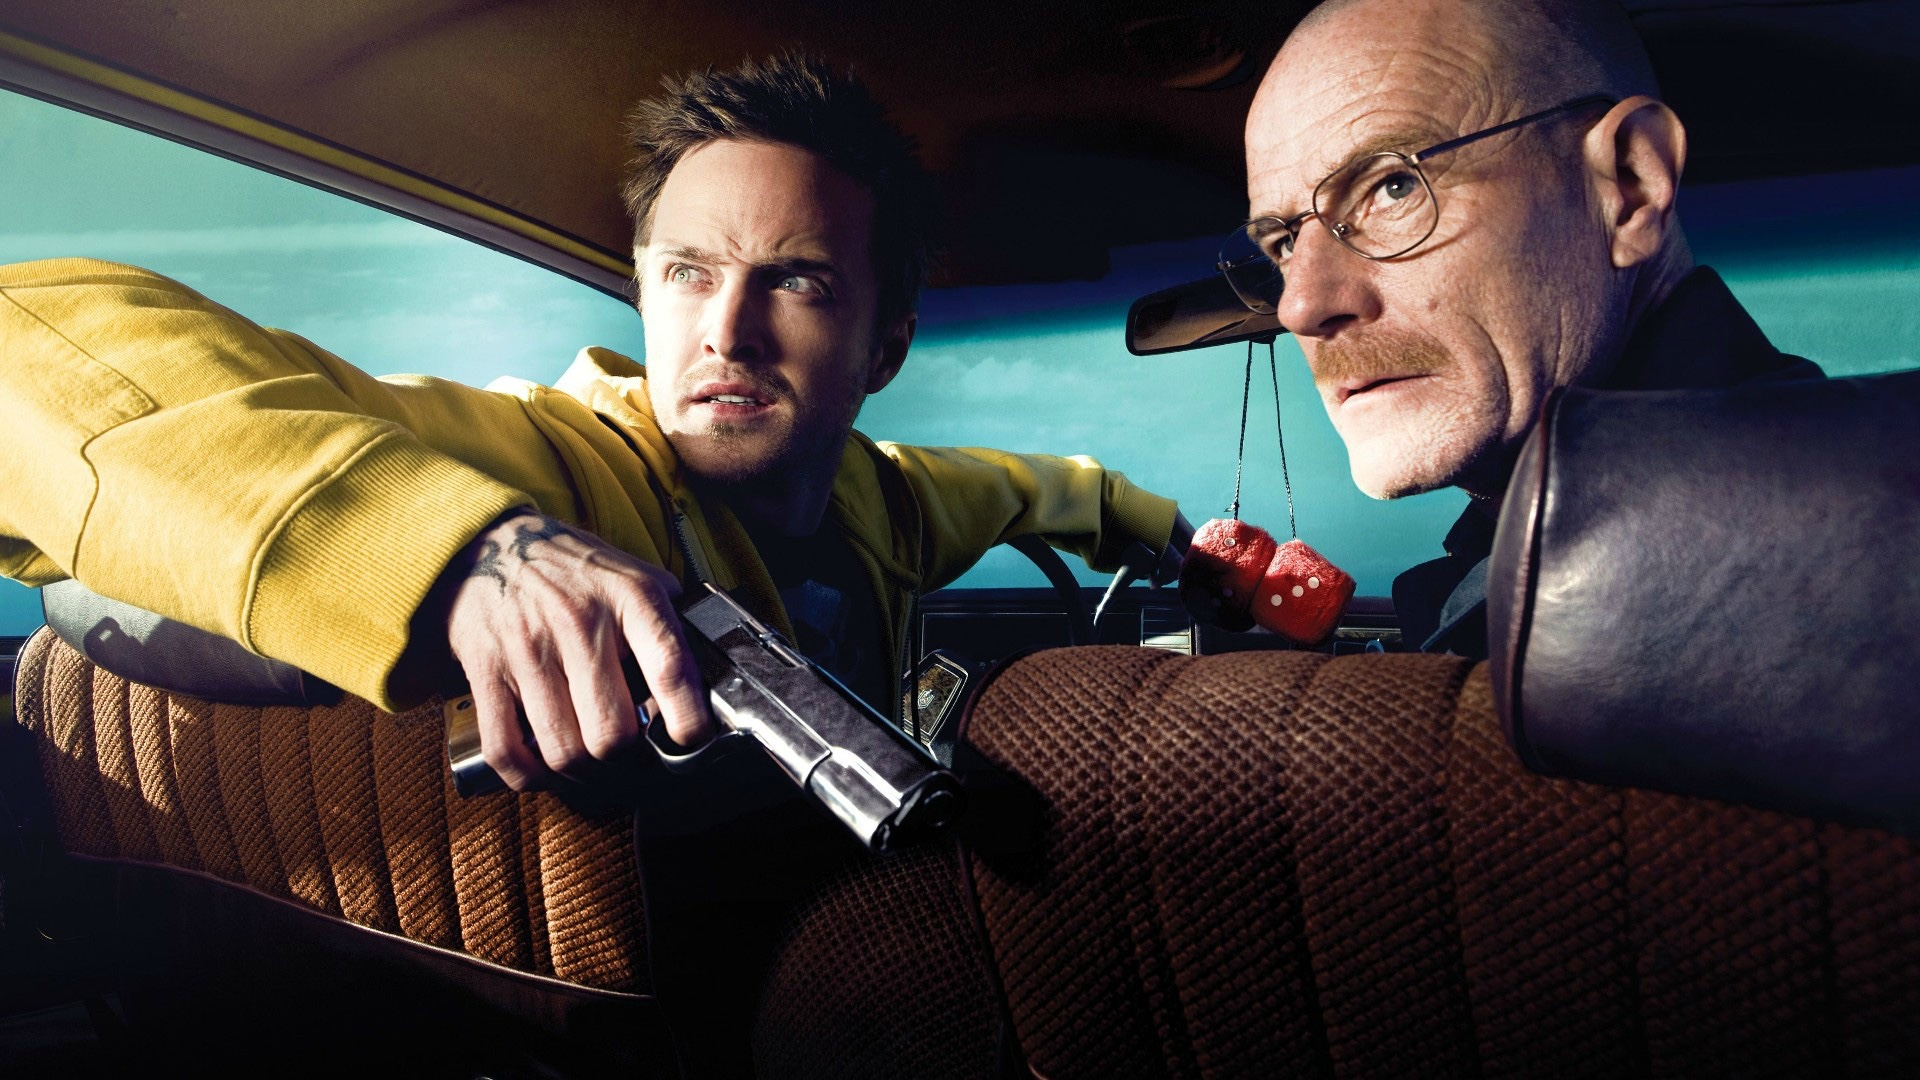 amc-is-reportedly-developing-a-breaking-bad-movie-social.jpg